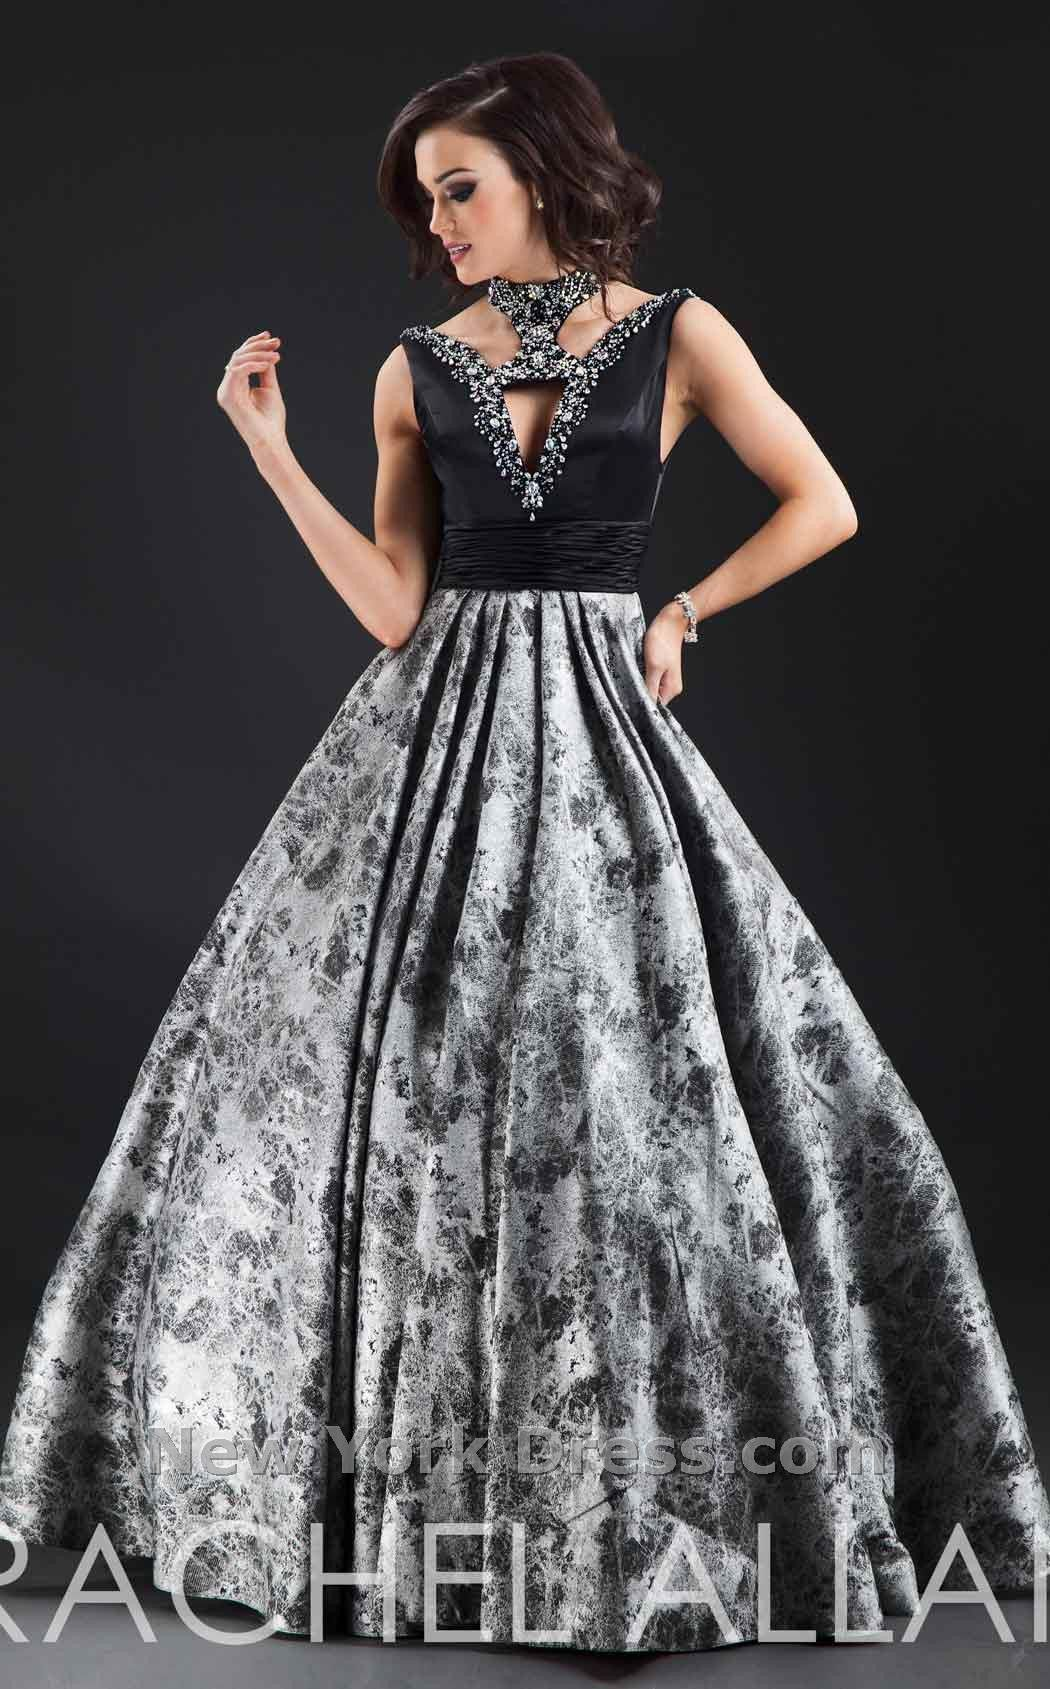 RA 8087 Cut-Out Detailed Crystal Embellished Bodice Black Print Ball Gown